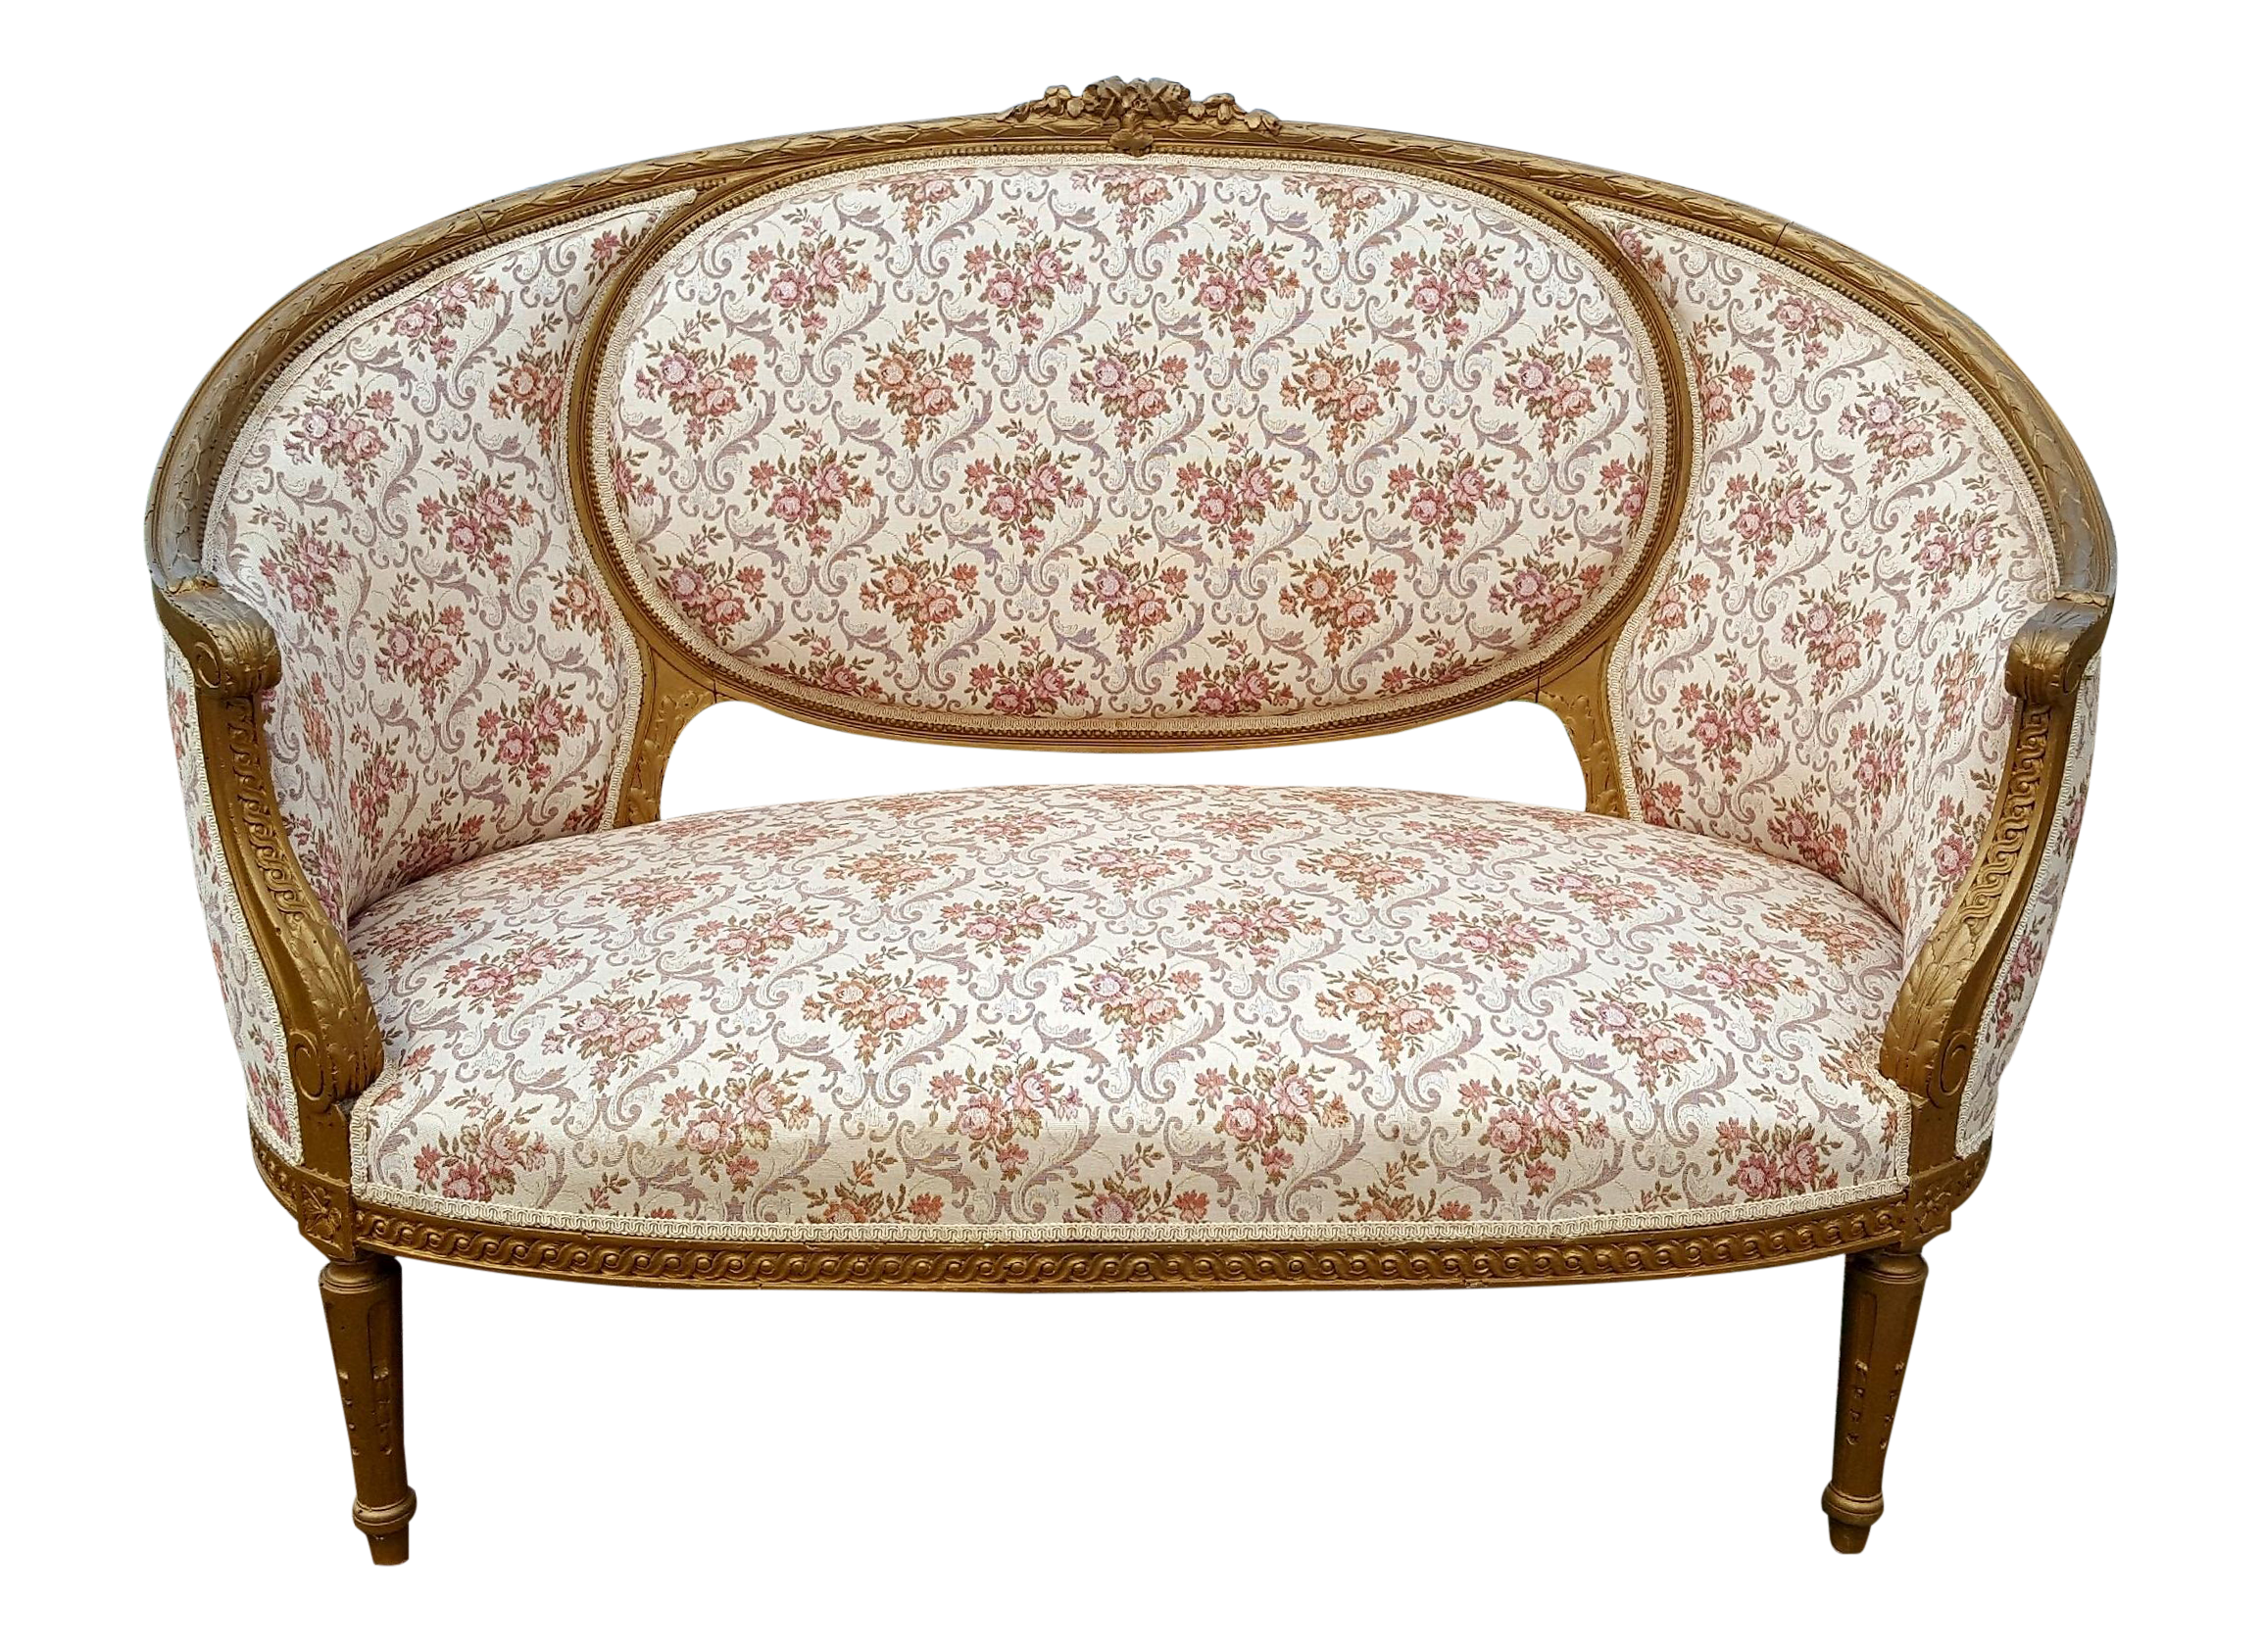 Antique French Louis Xvi Giltwood Gold Loveseat Chairish